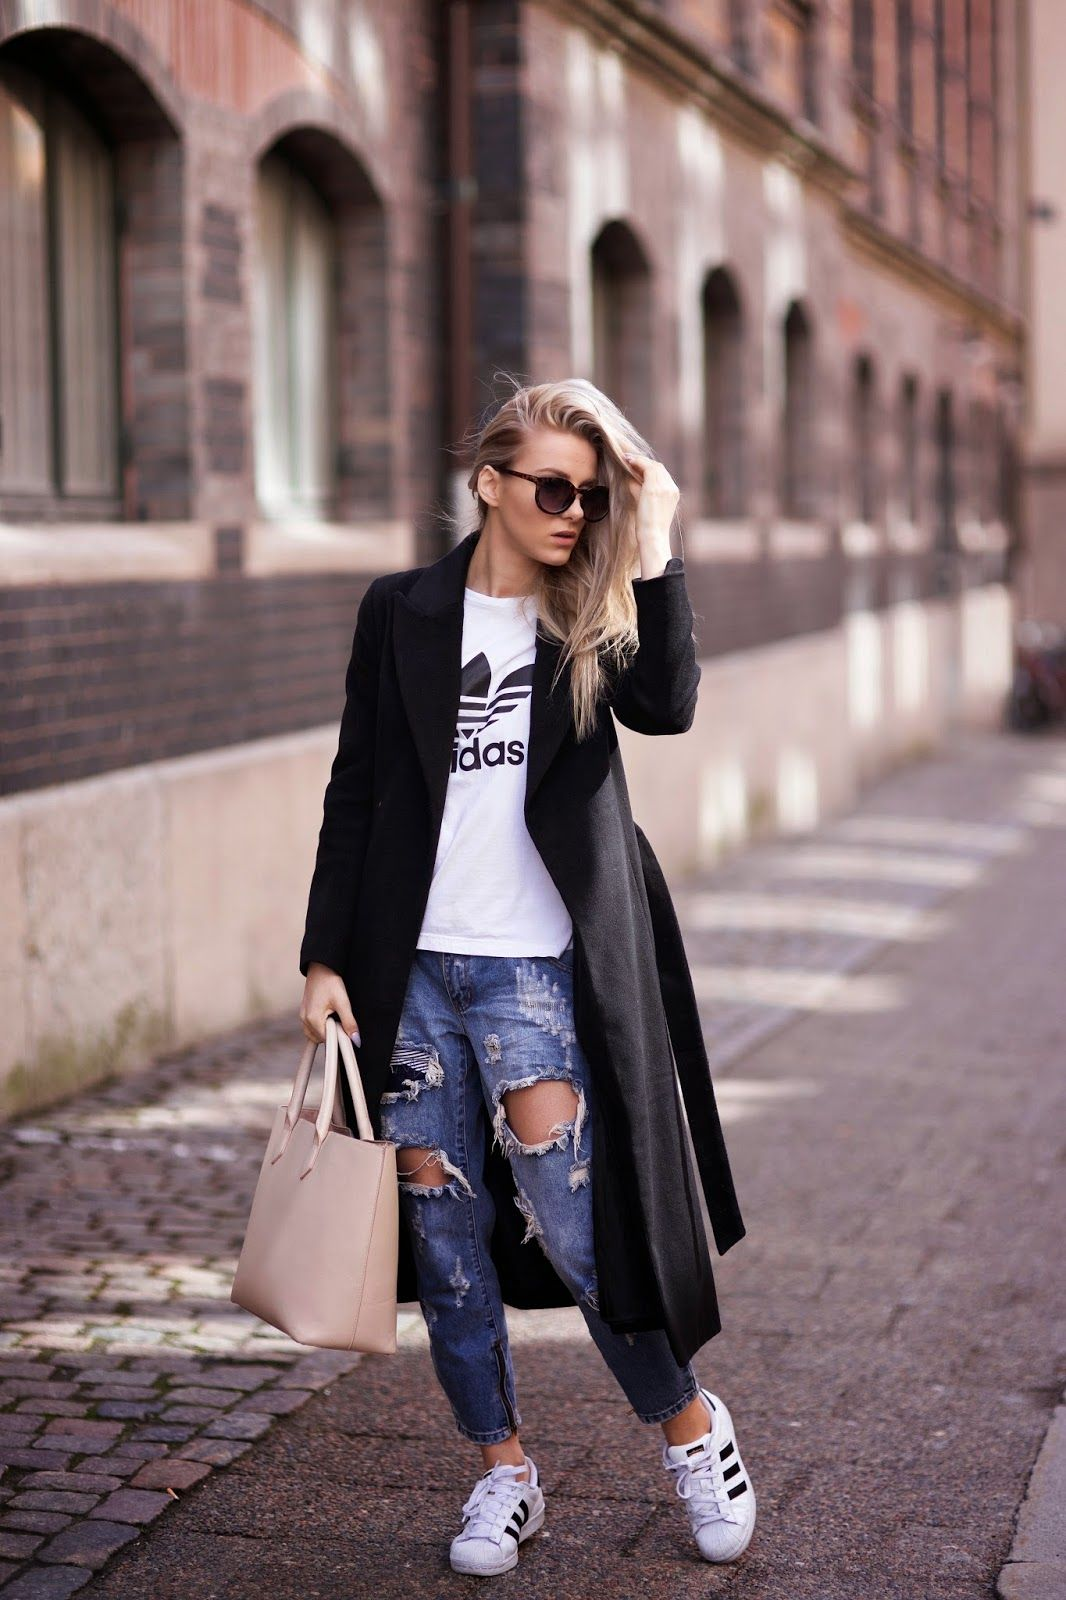 adidas originals street style - Google Search | style in ...